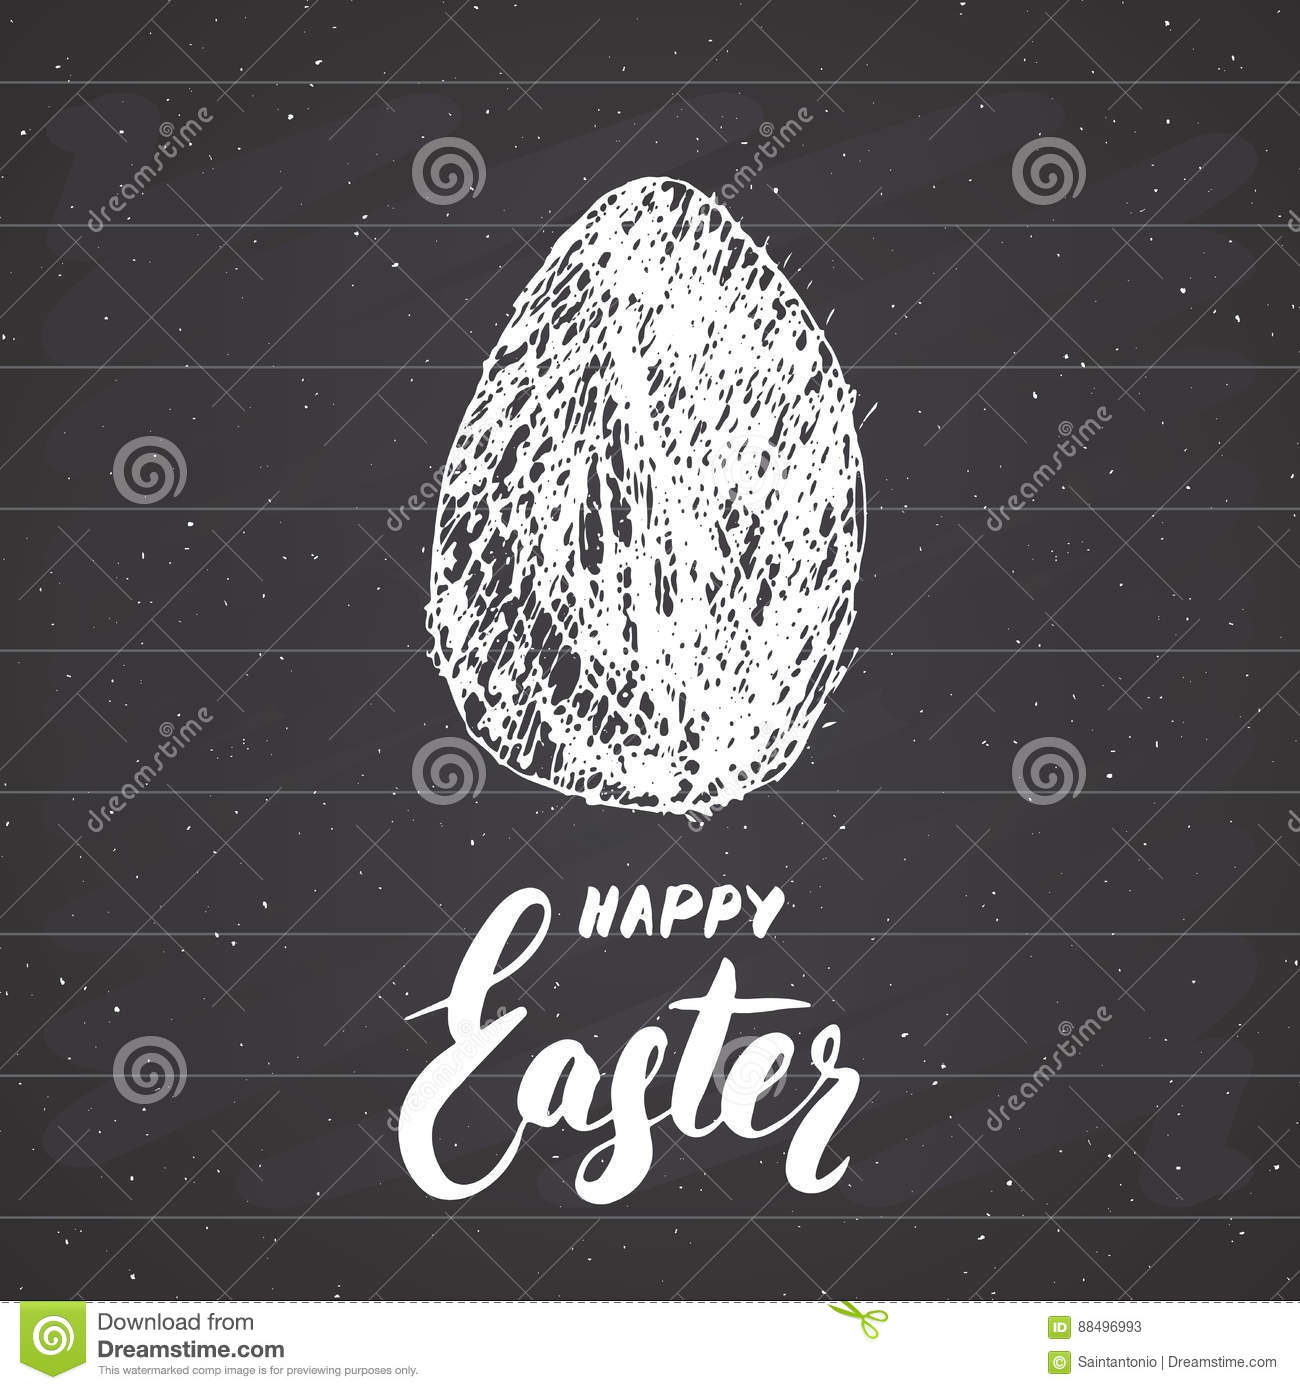 Happy Easter Hand Drawn Greeting Card With Lettering And